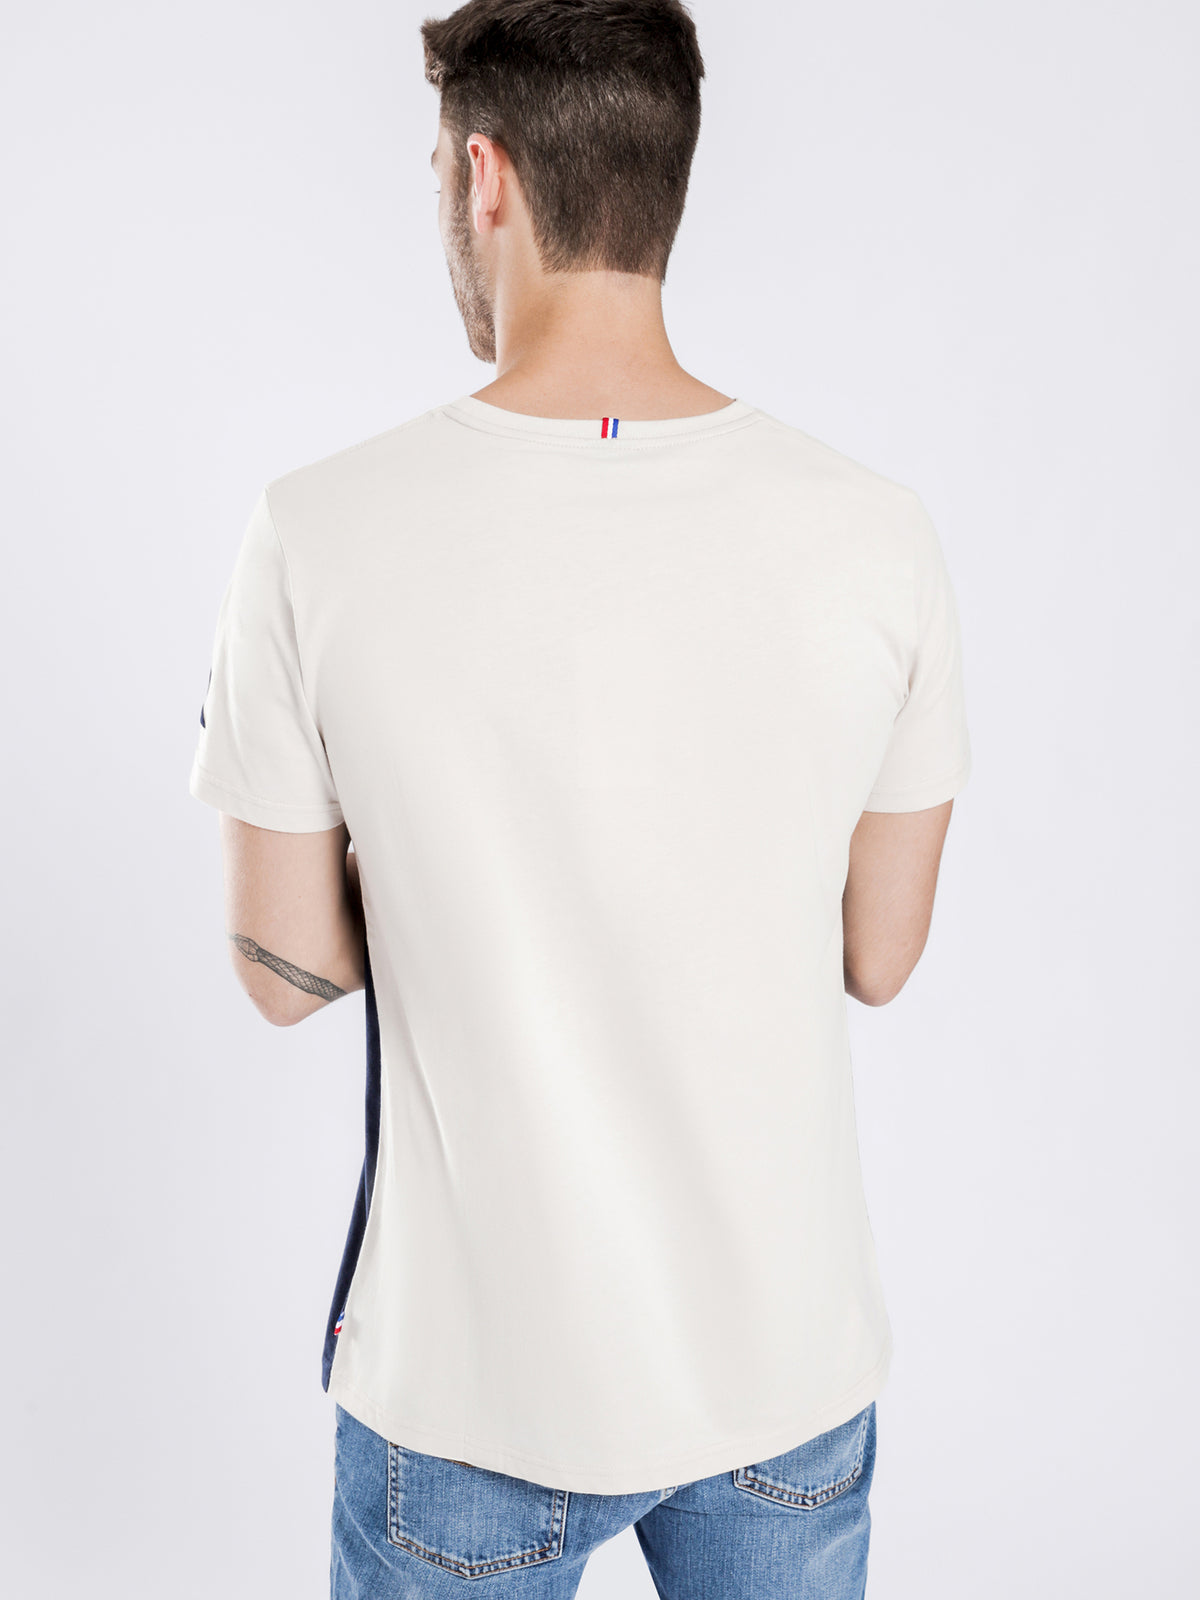 Timon Short Sleeve T-Shirt in Sand